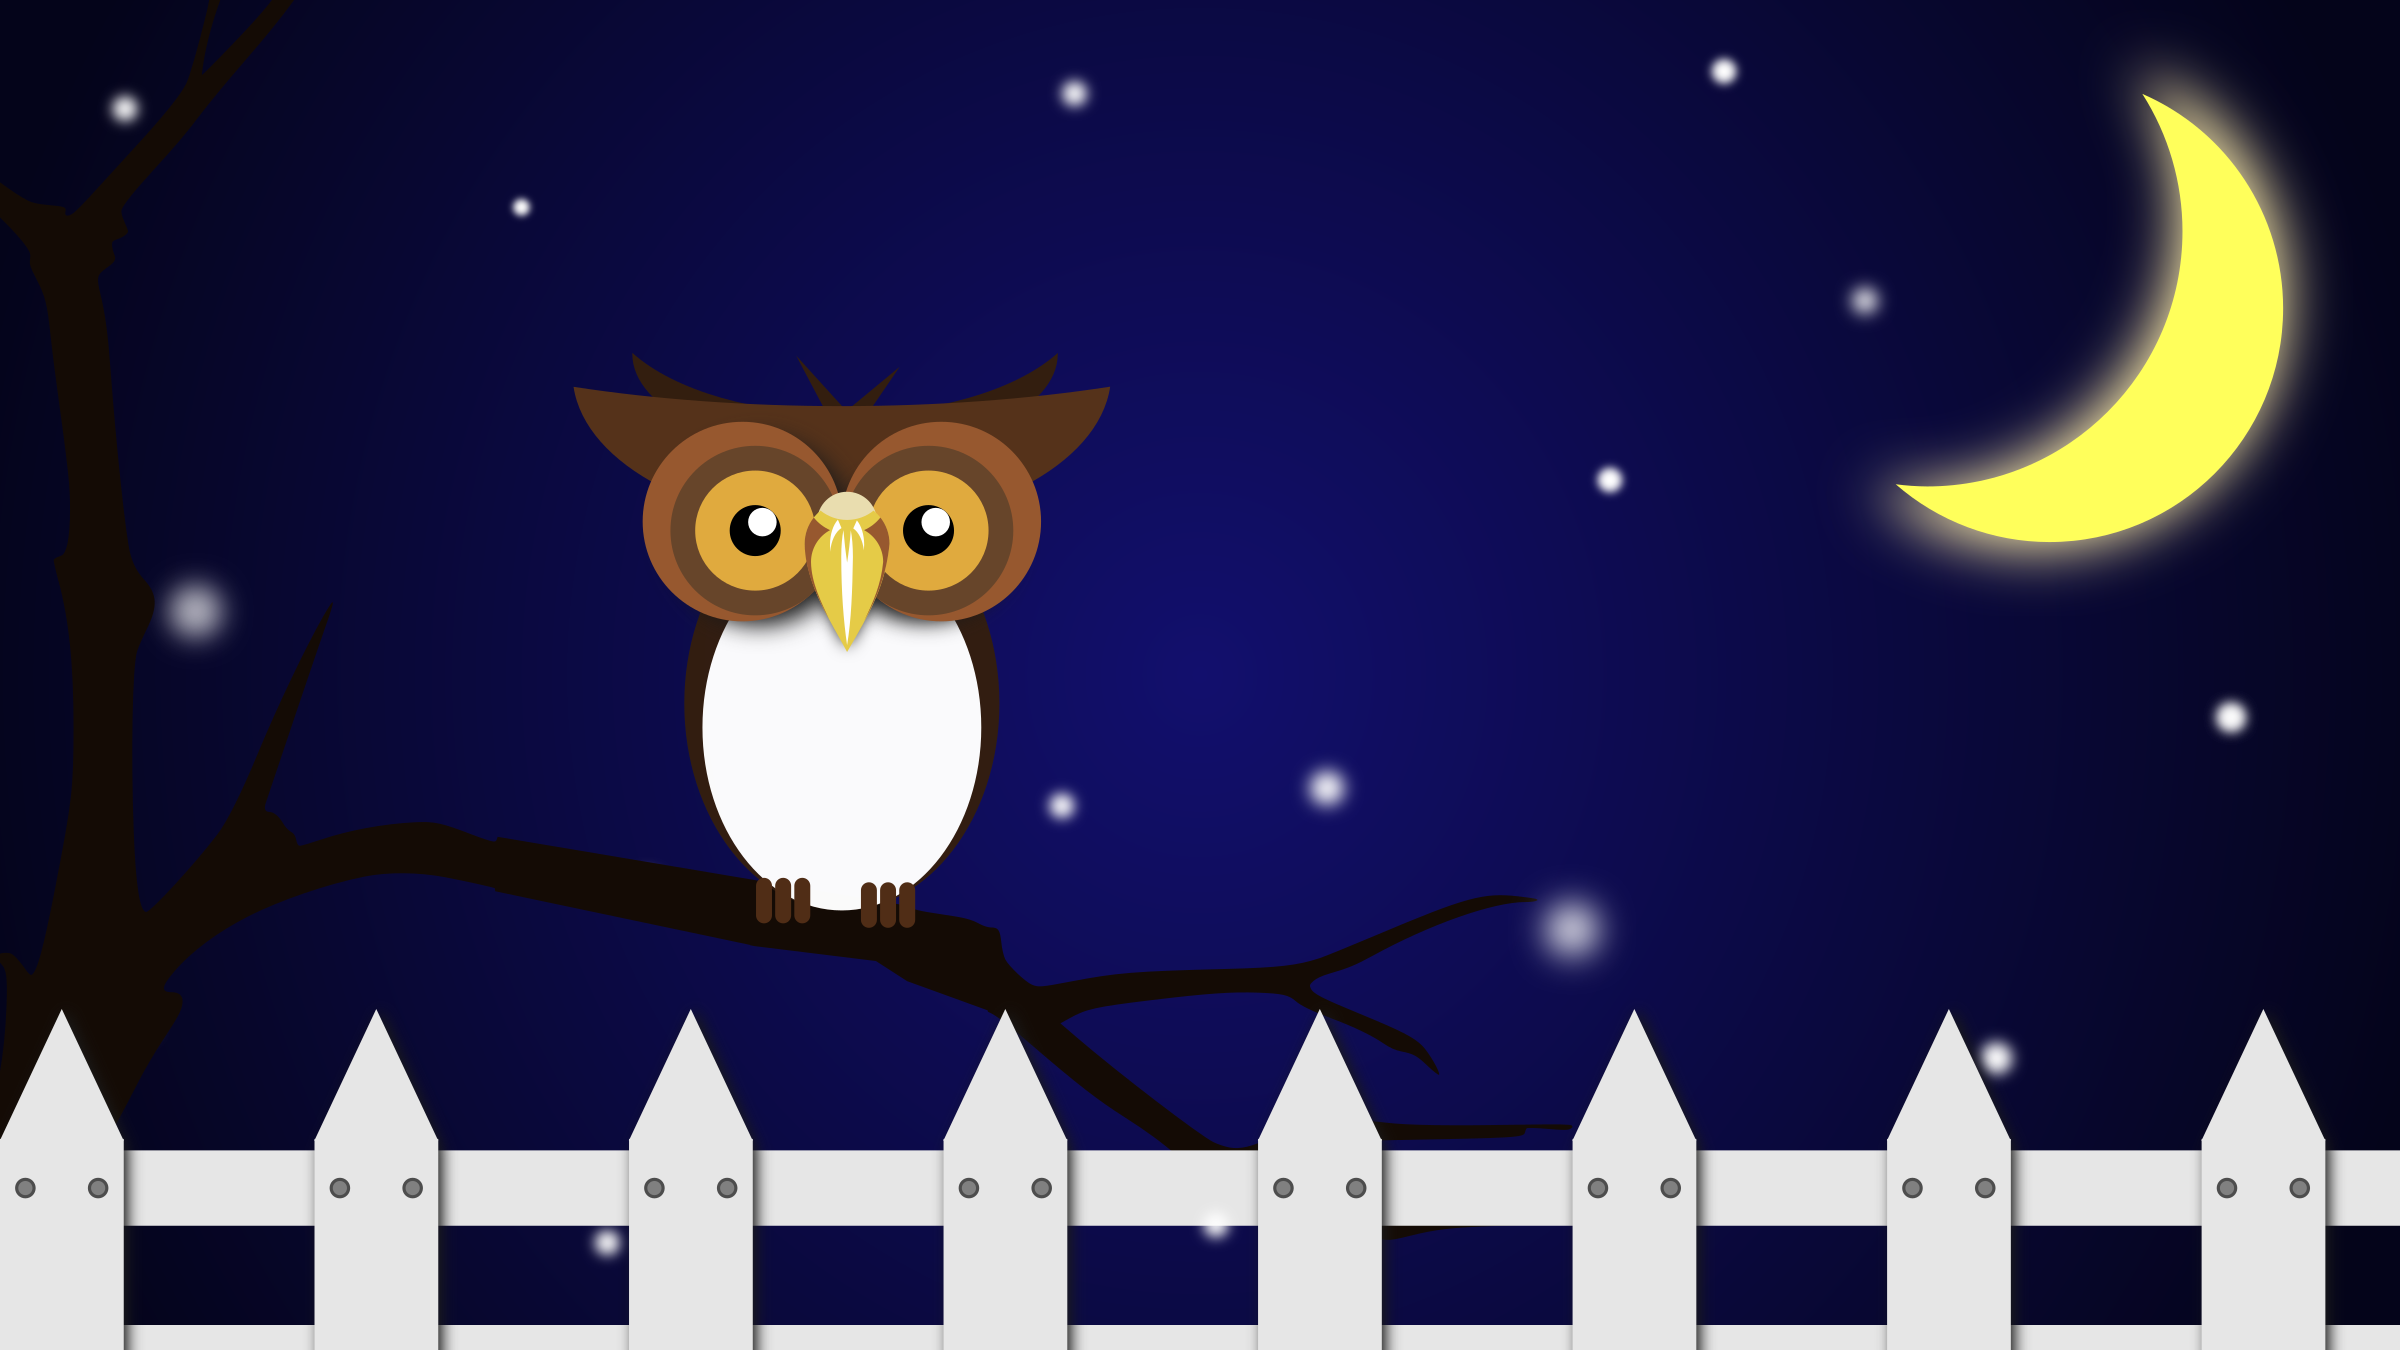 Night Owl Vector Clipart Image Free Stock Photo Public